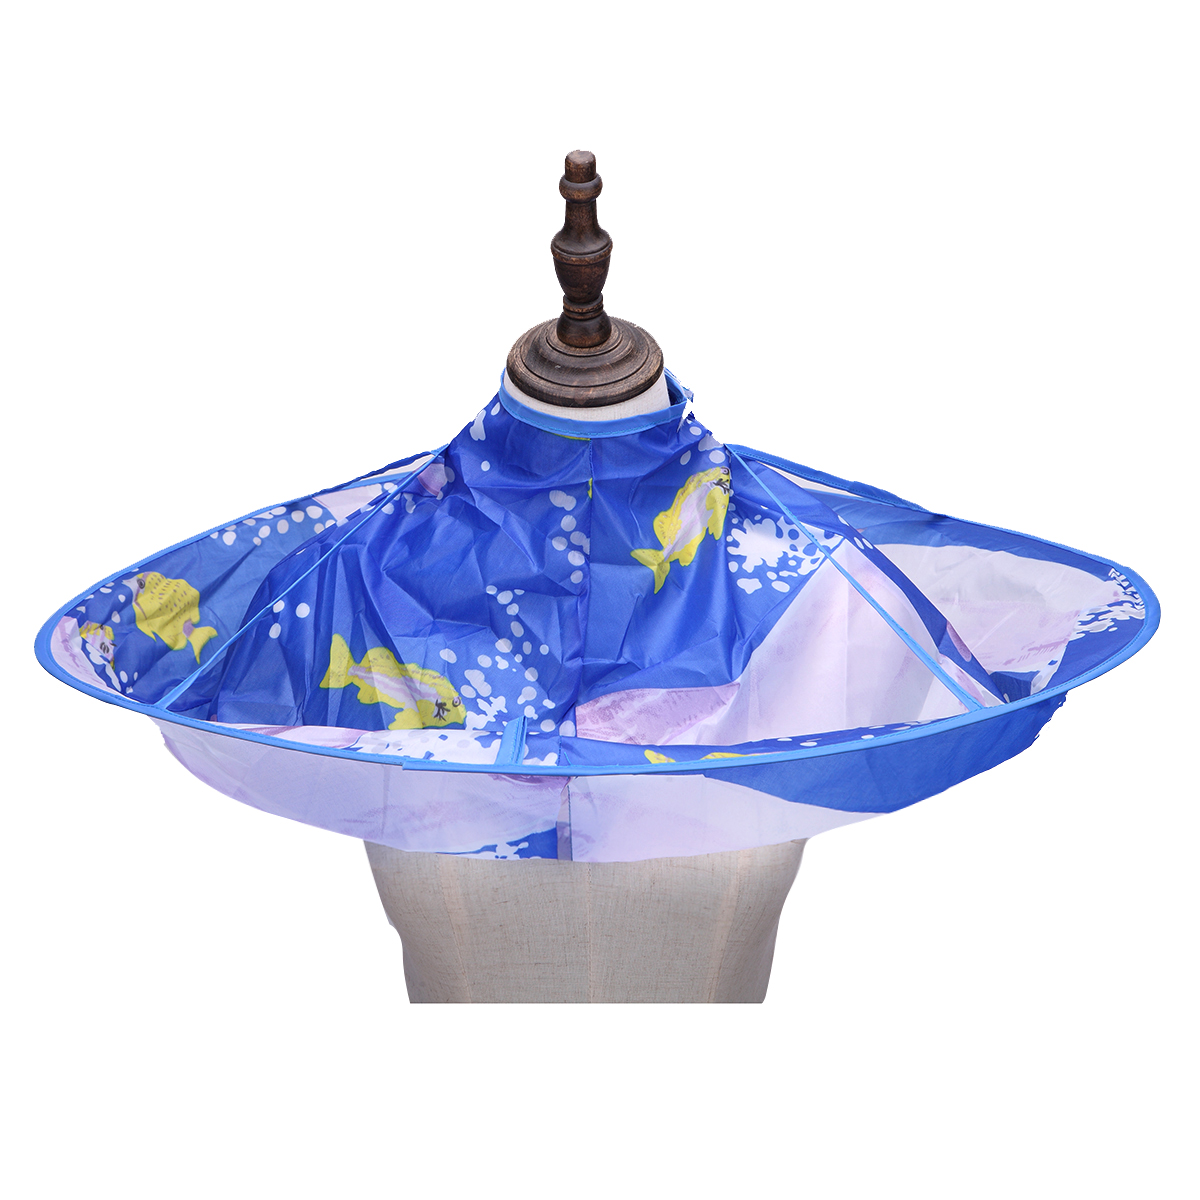 Hair Care & Styling 2 Colors Child Foldable Haircutting Cloak Waterproof Hair Umbrella Hairdresser Cape Shaving Wrap Barber Pro Salon Styling Tool